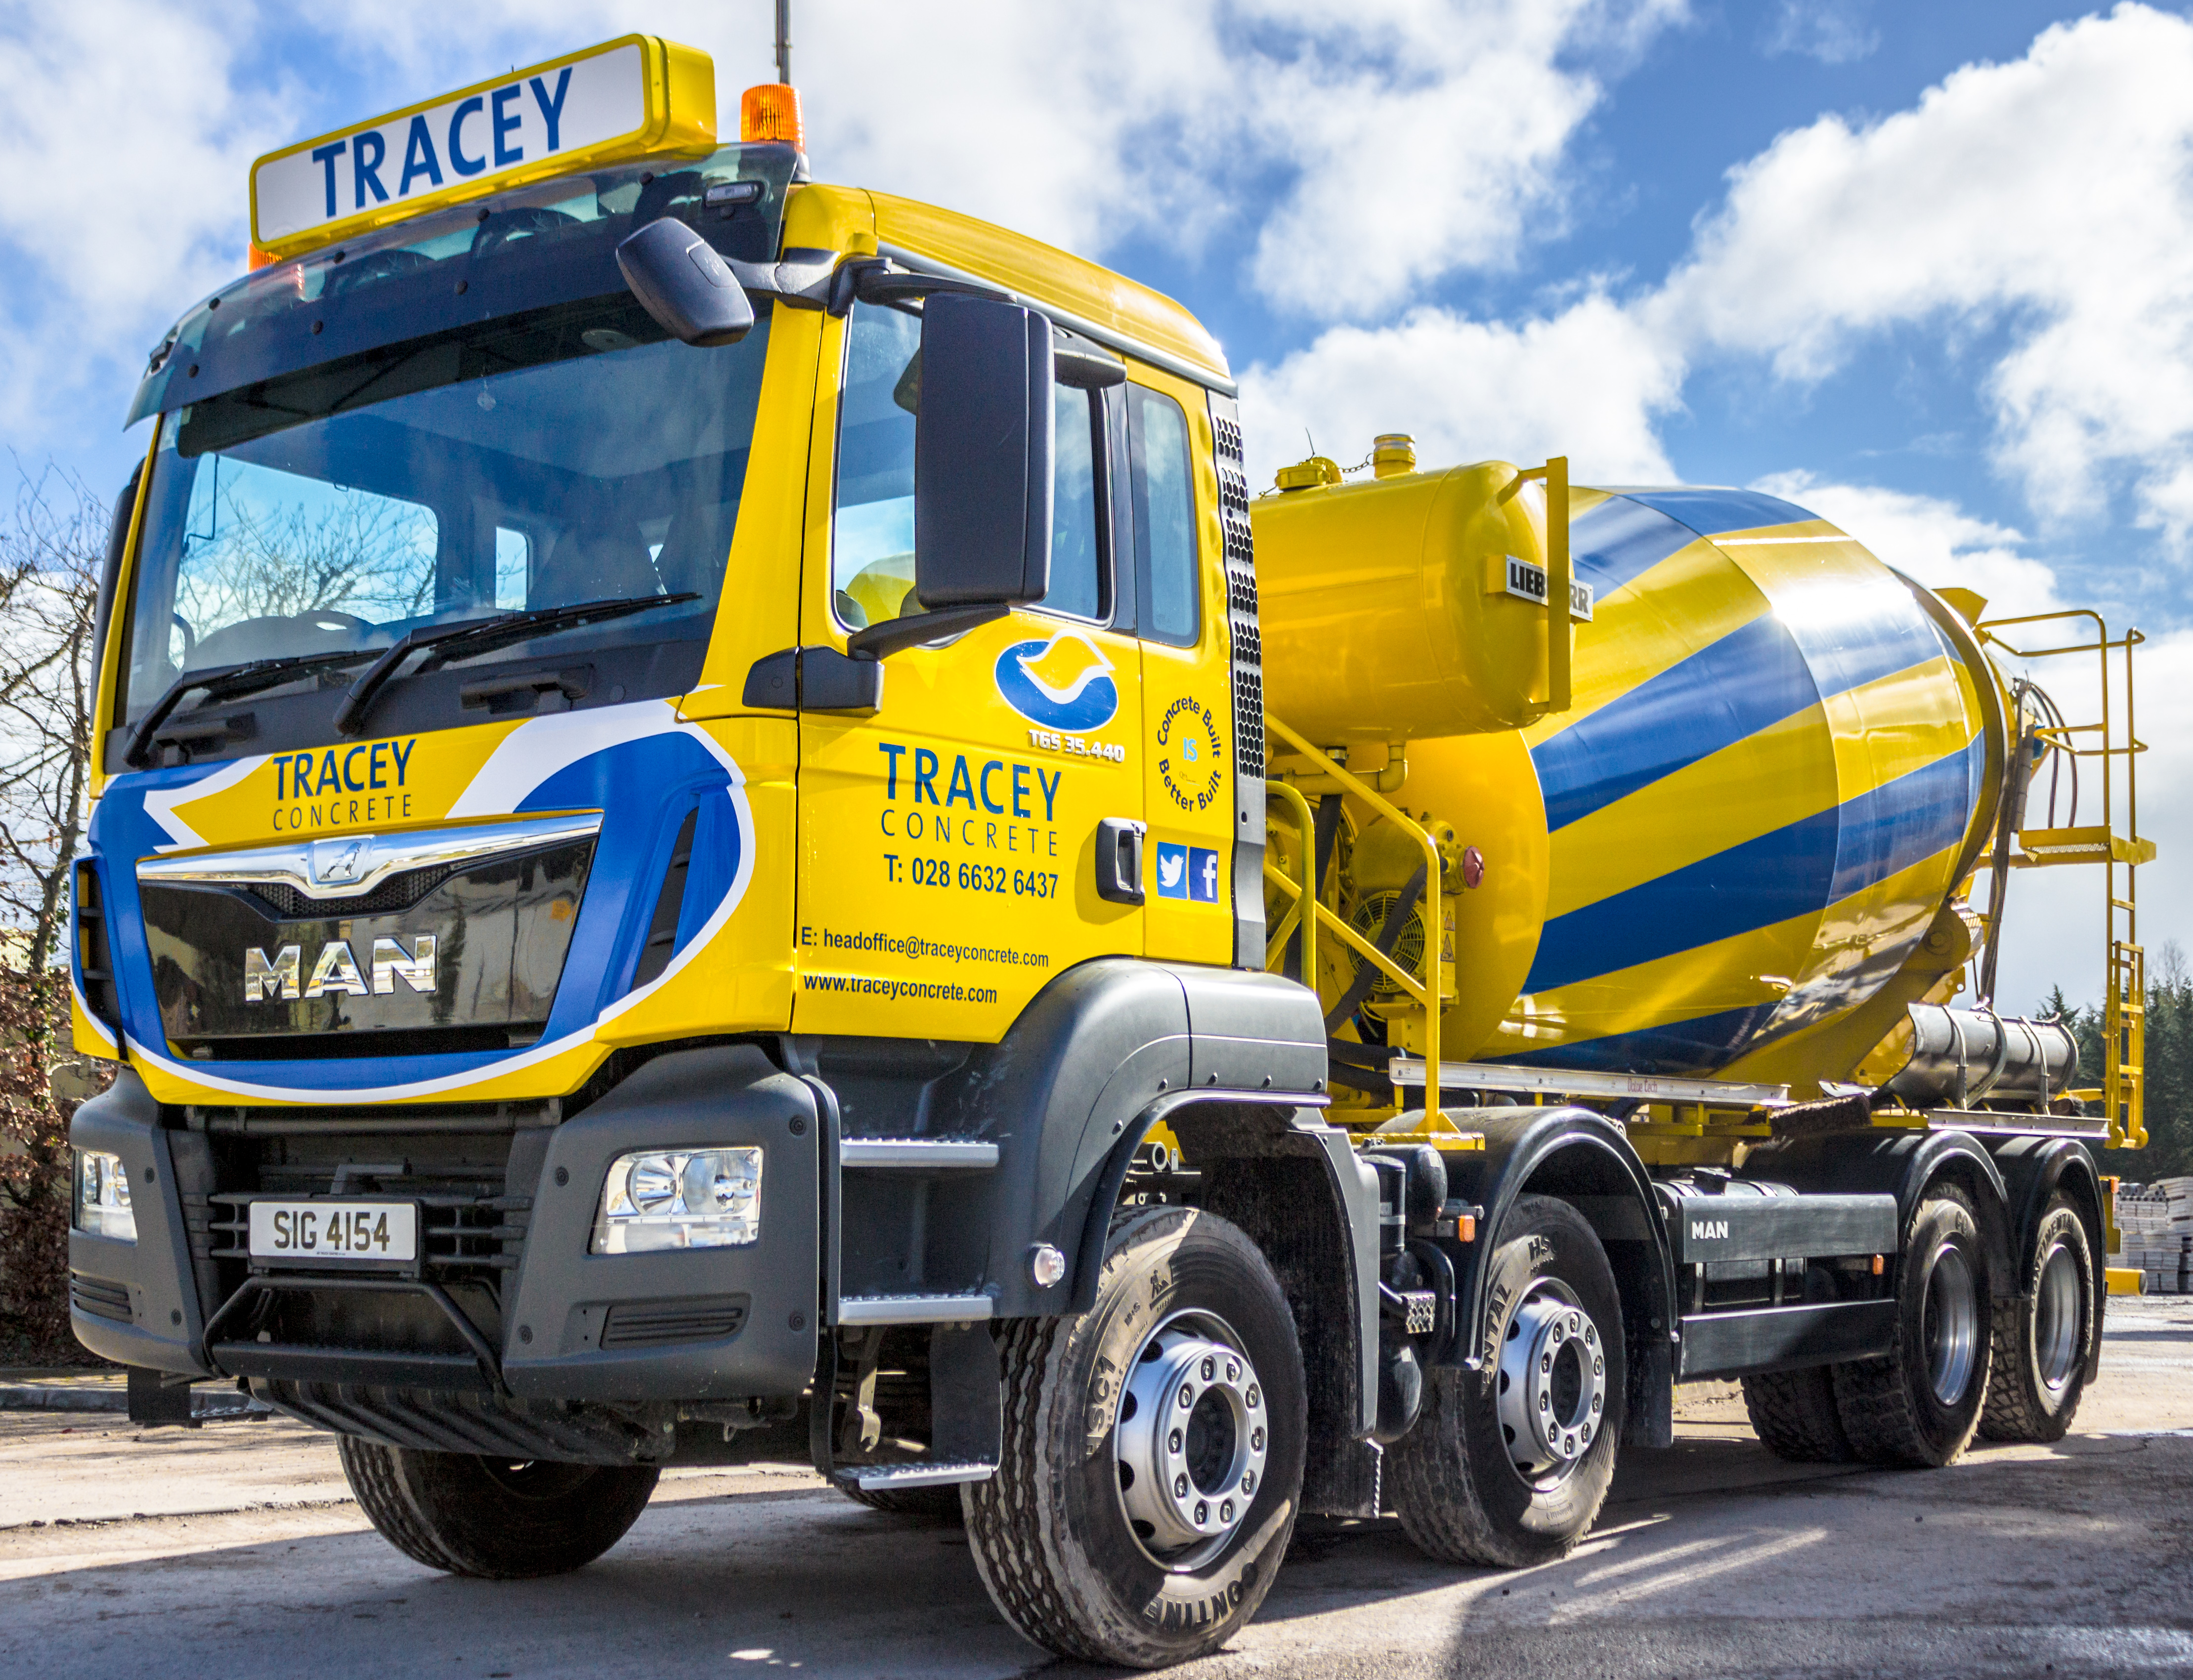 new readymix man lorry tracey concrete tracey concrete